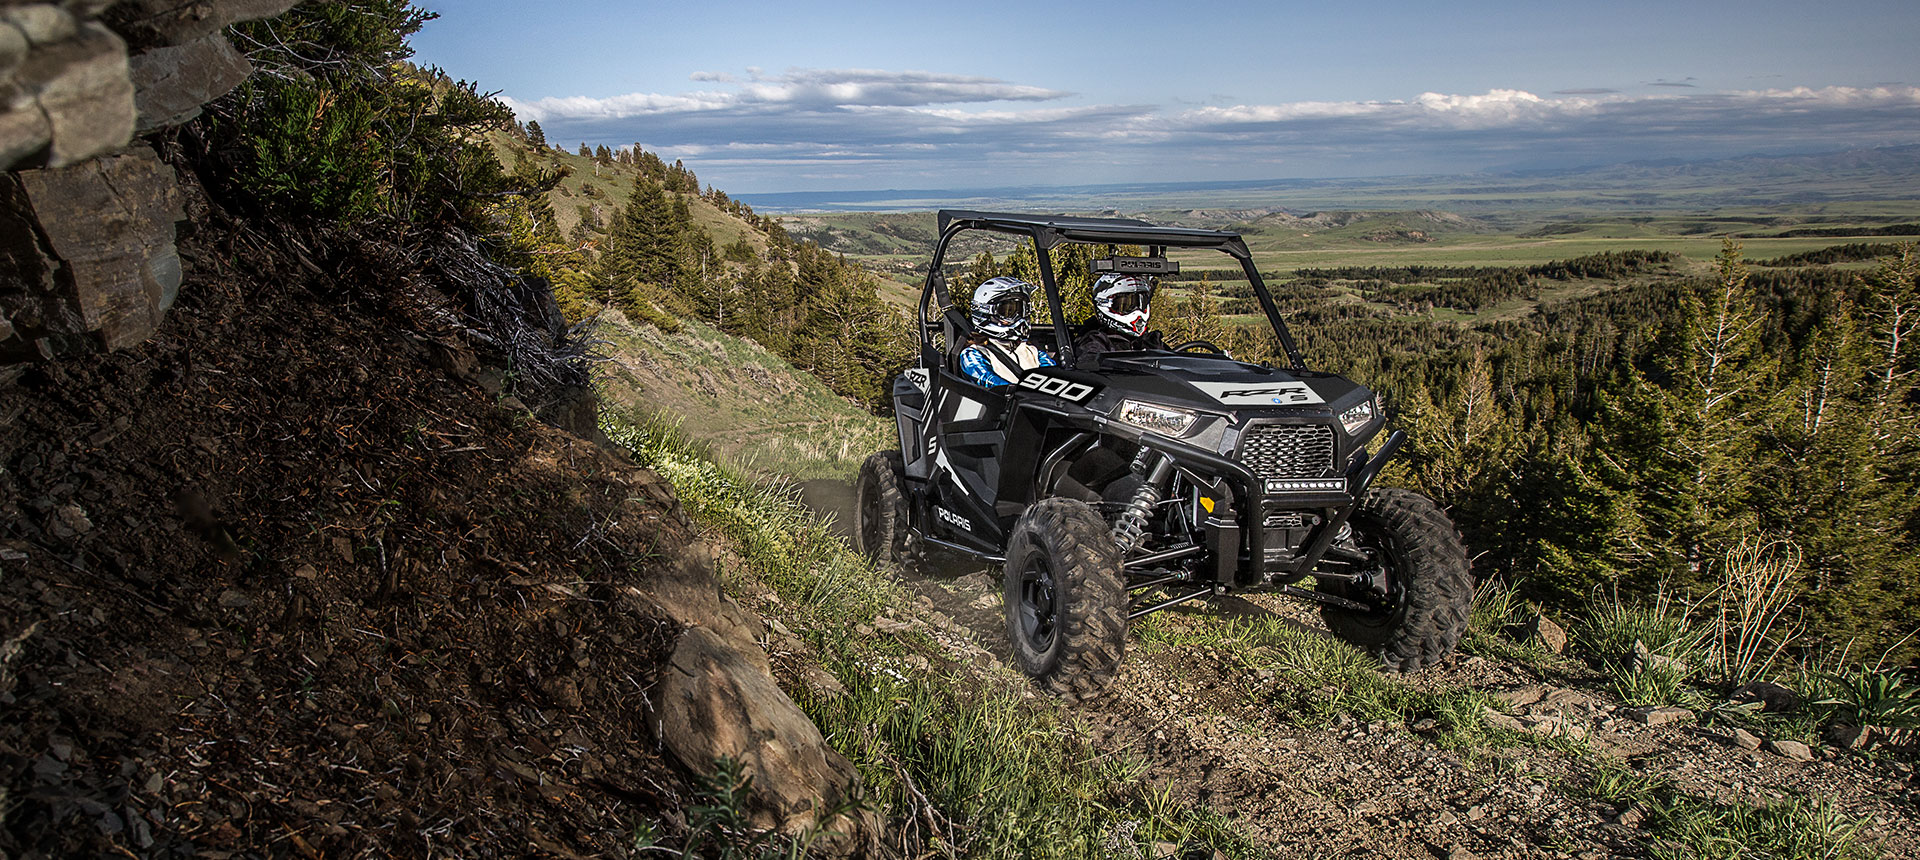 2019 Polaris RZR S 900 EPS in Amory, Mississippi - Photo 4